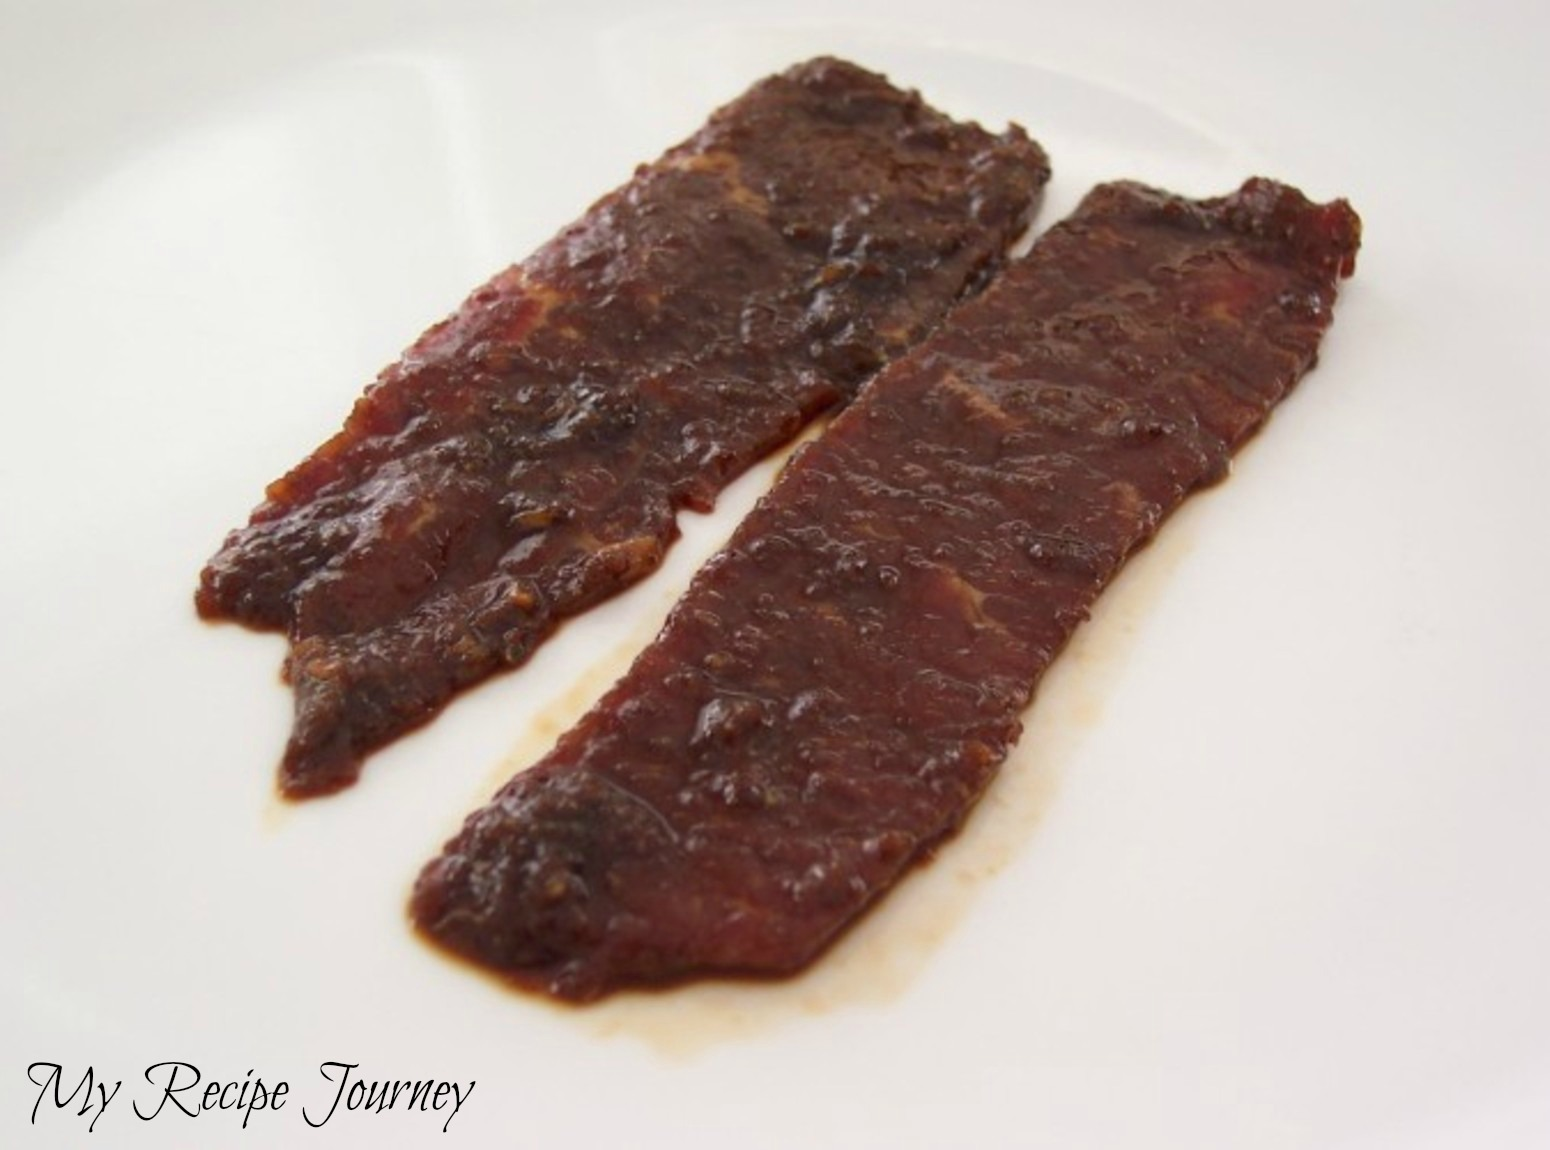 My Recipe Journey: Homemade Beef Jerky